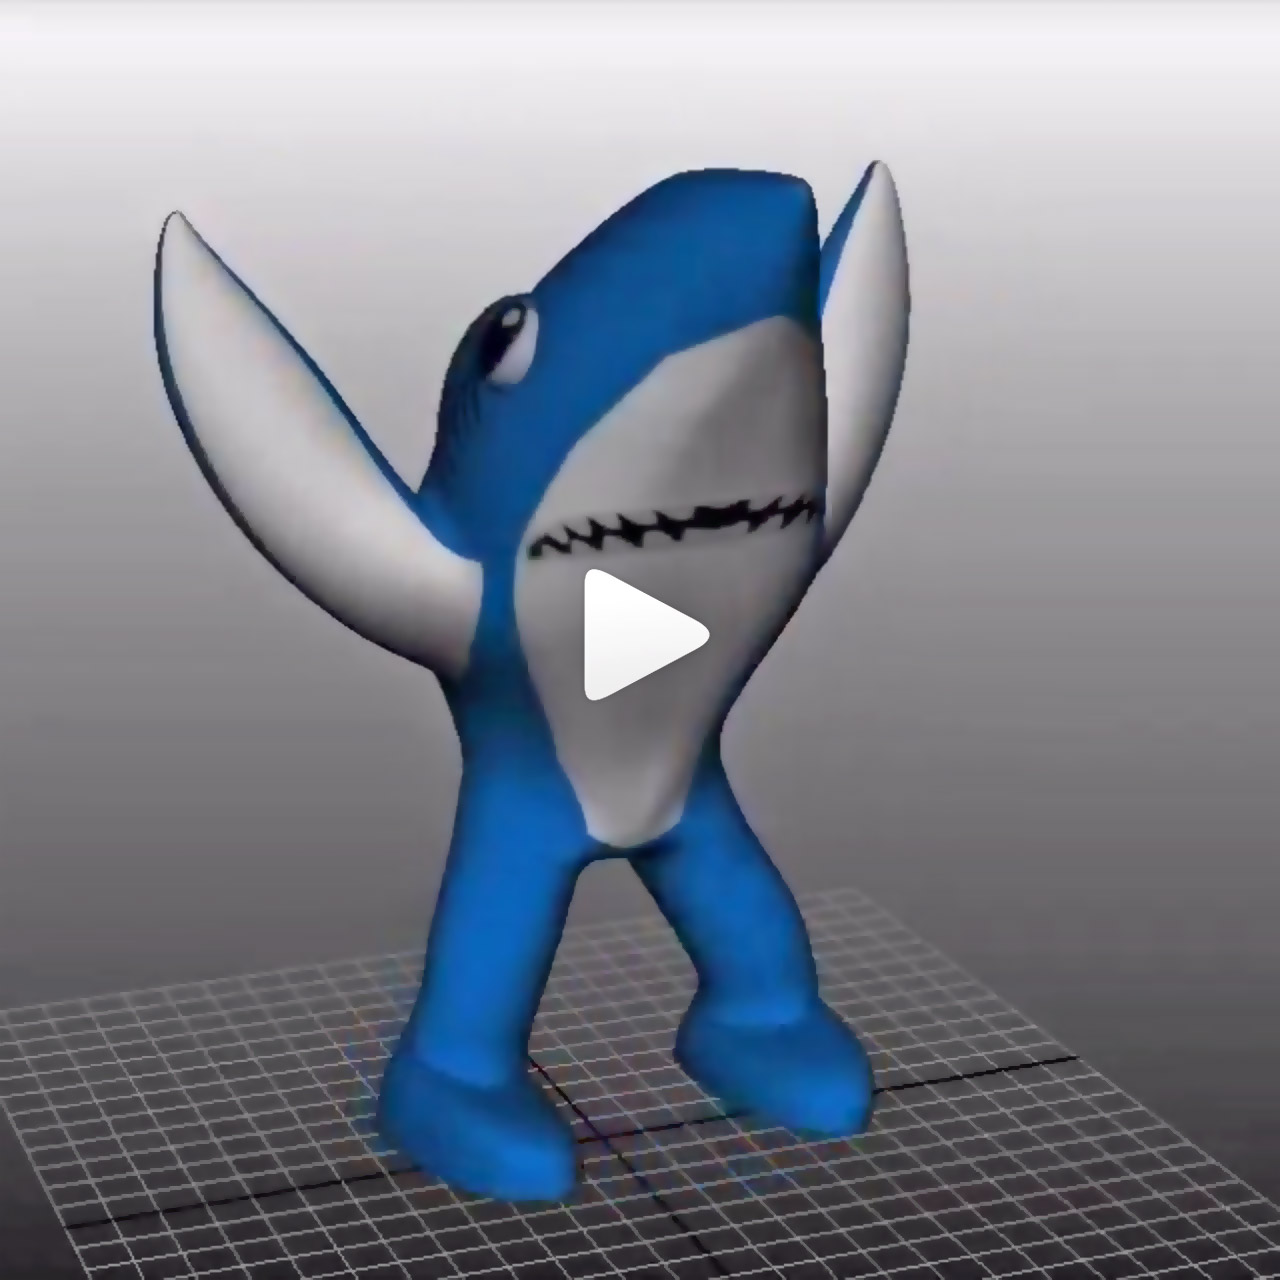 3D model of Left Shark from Katy Perry Super Bowl halftime performance